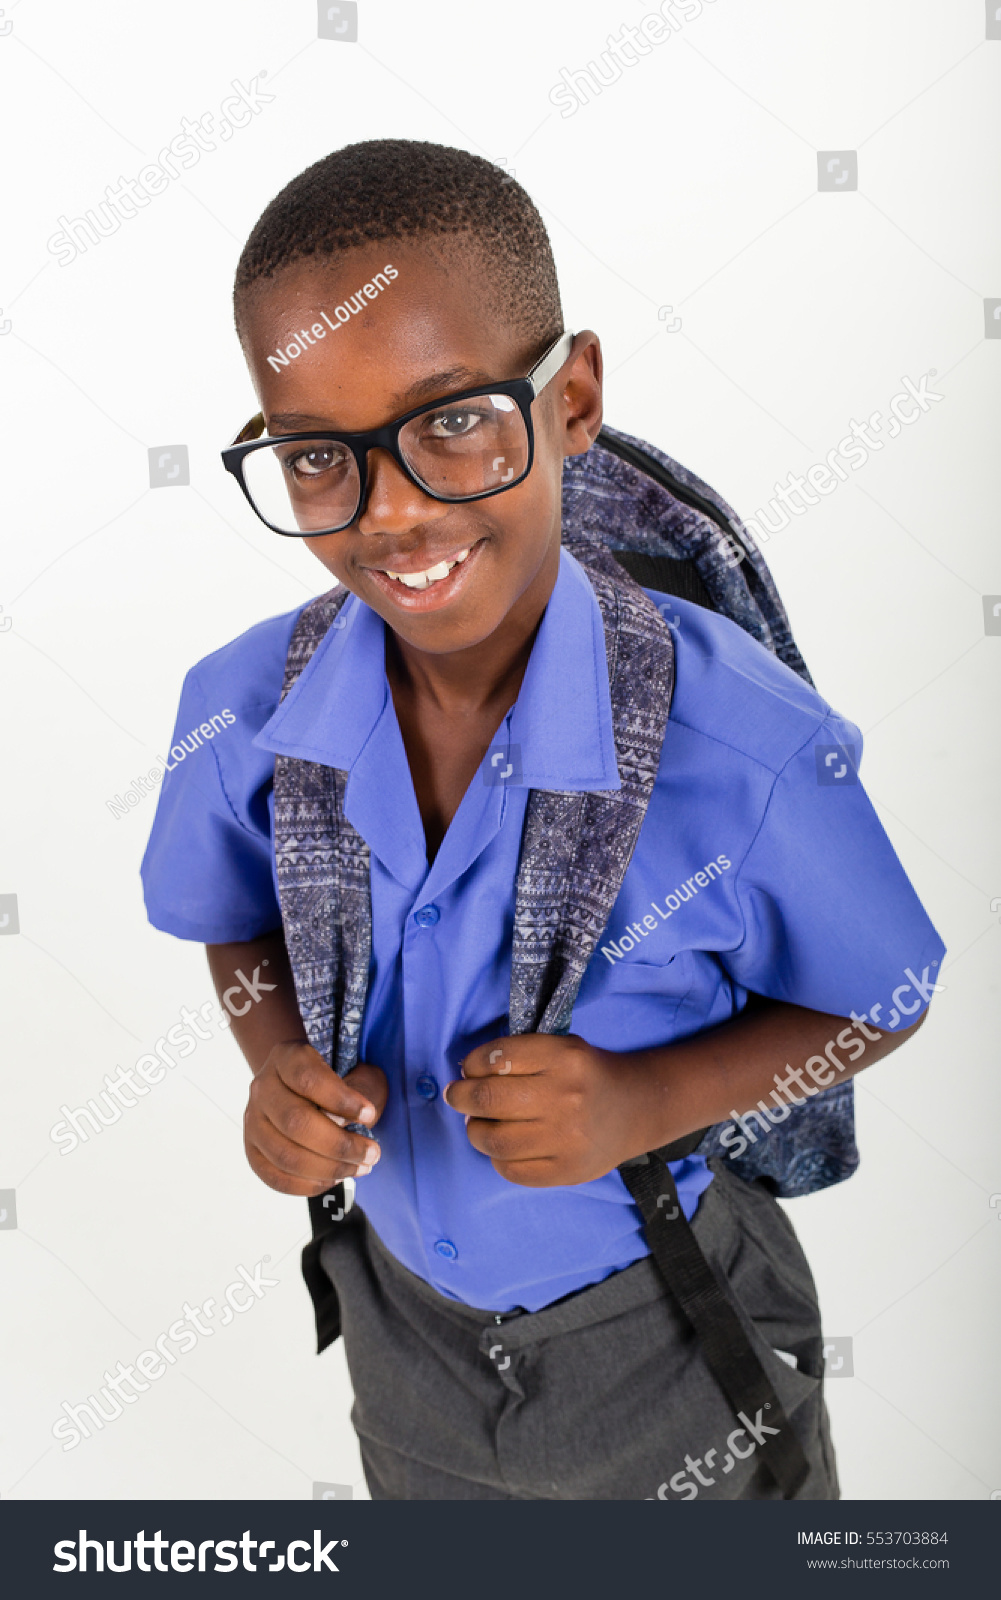 African boy with glasses wearing his school uniform and a rucksack ready to go back to school